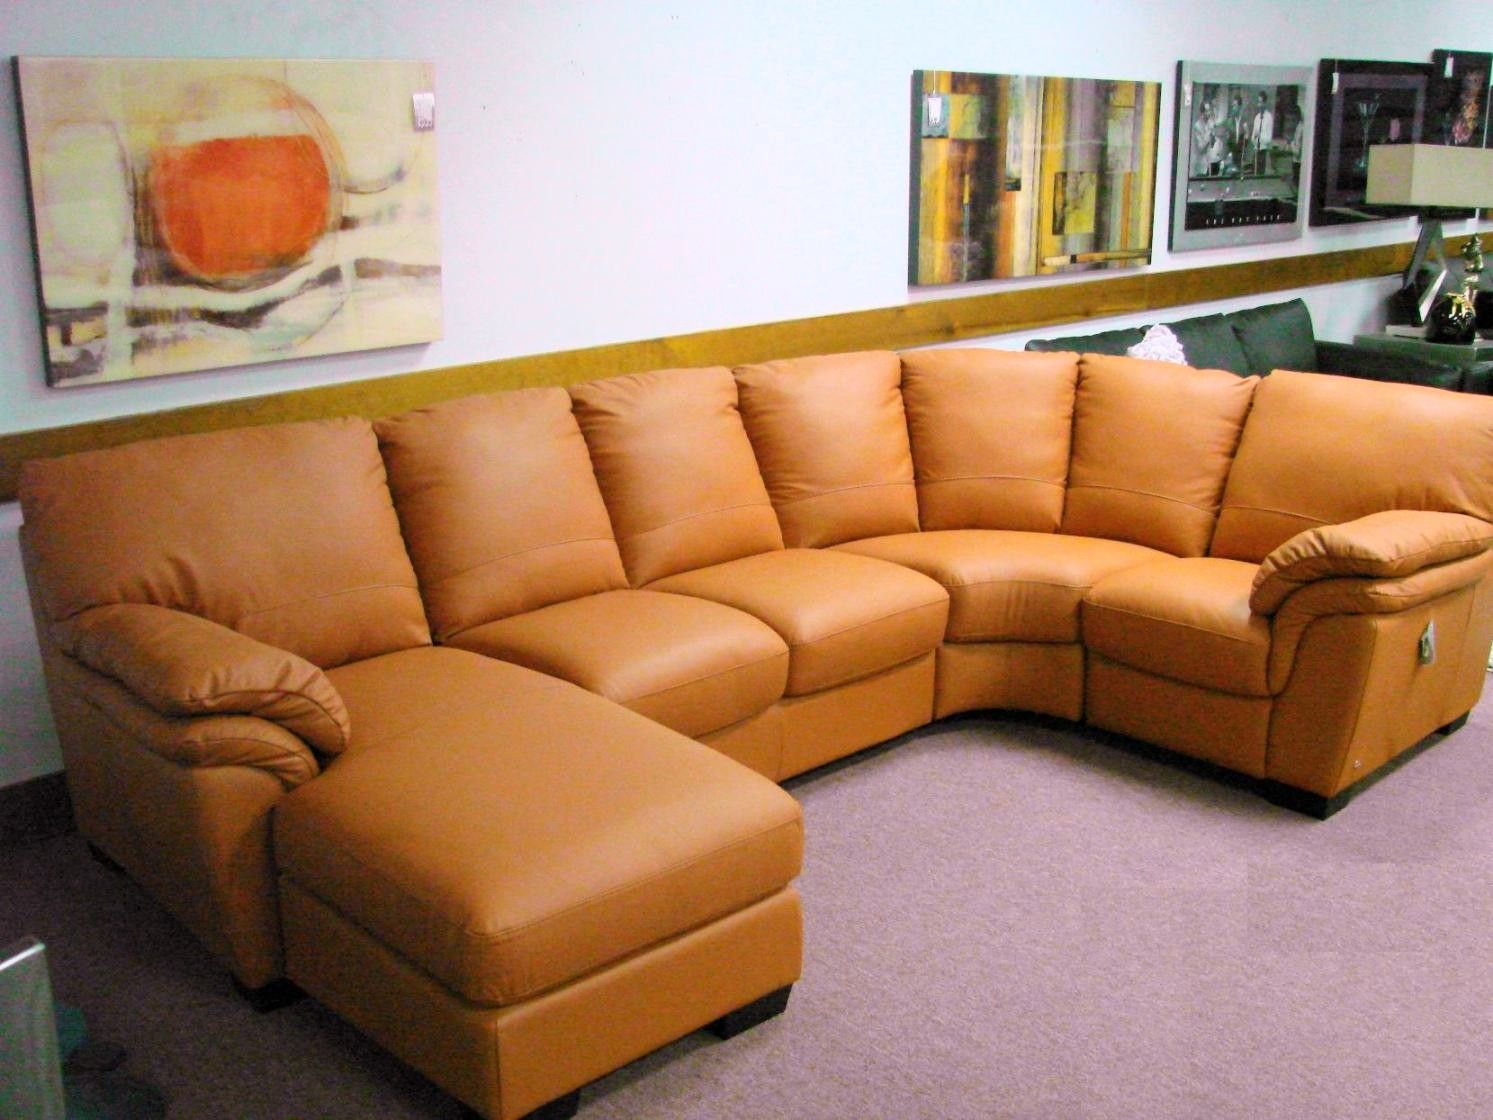 nice Light Tan Leather Couch  Fresh Light Tan Leather Couch 16 In Modern Sofa Inspiration : tan leather sectional sofa - Sectionals, Sofas & Couches